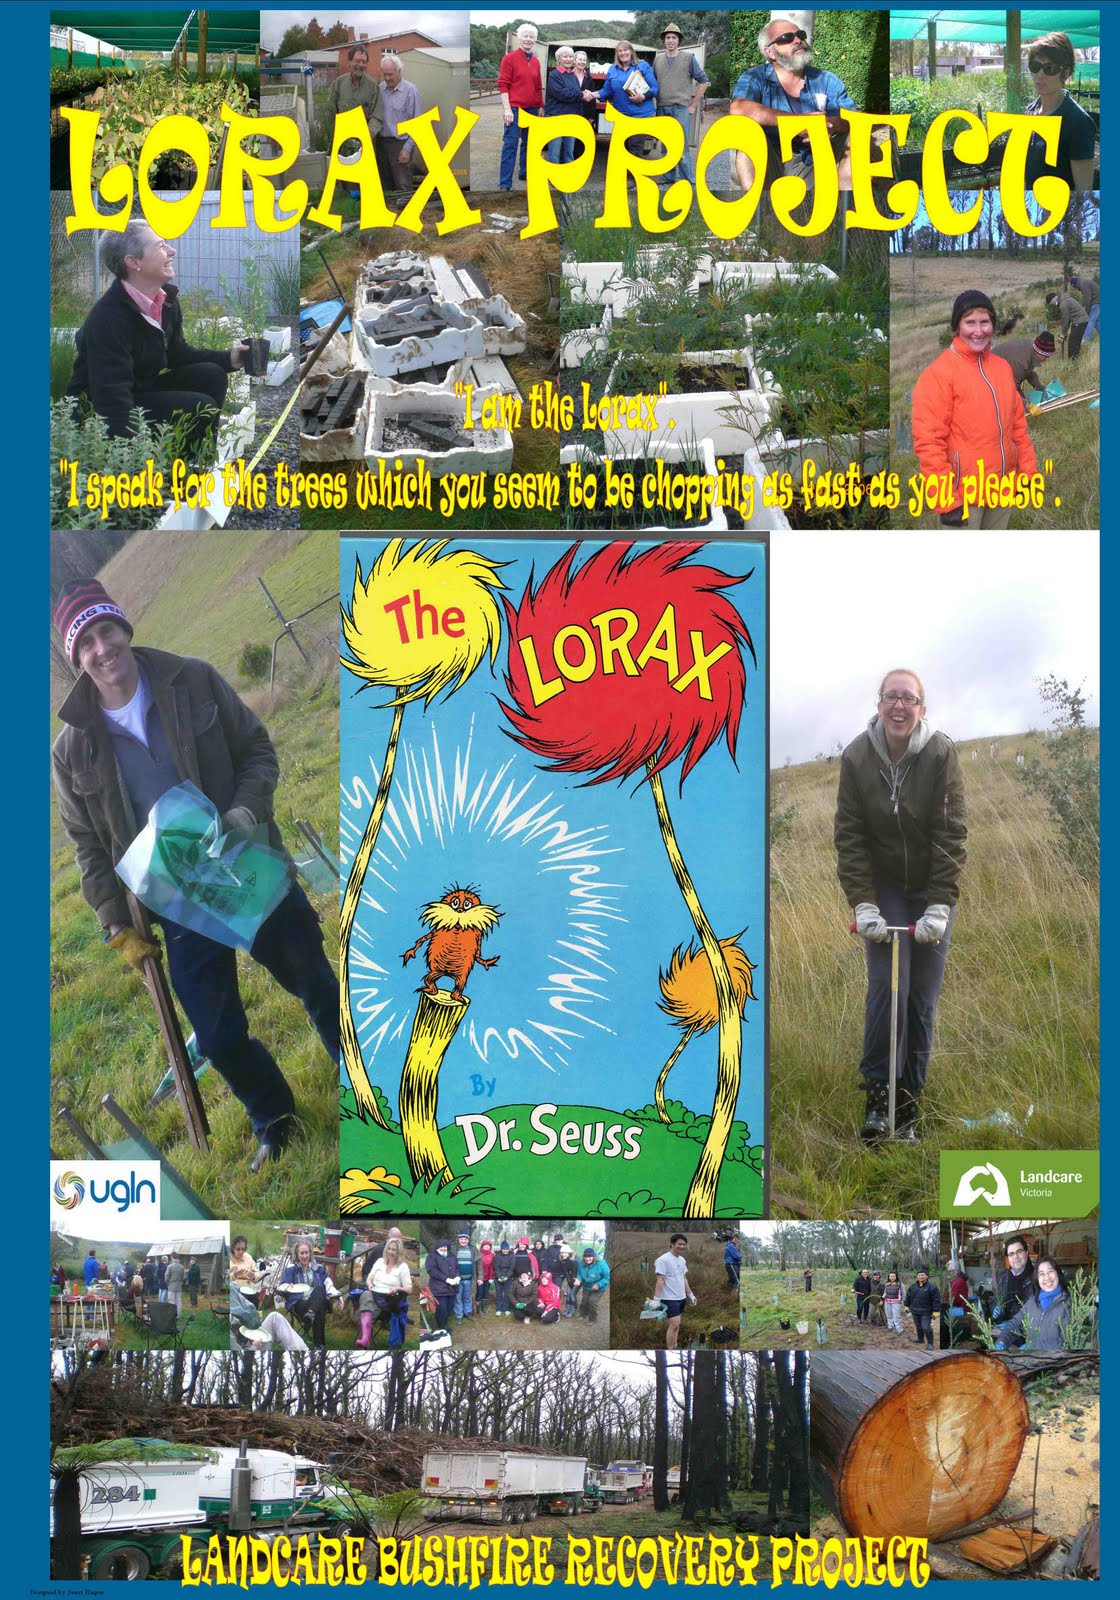 the lorax project The lorax, dr seuss • access to the lorax project website-   com/loraxproject/ • poster -making materials: markers, paper,.